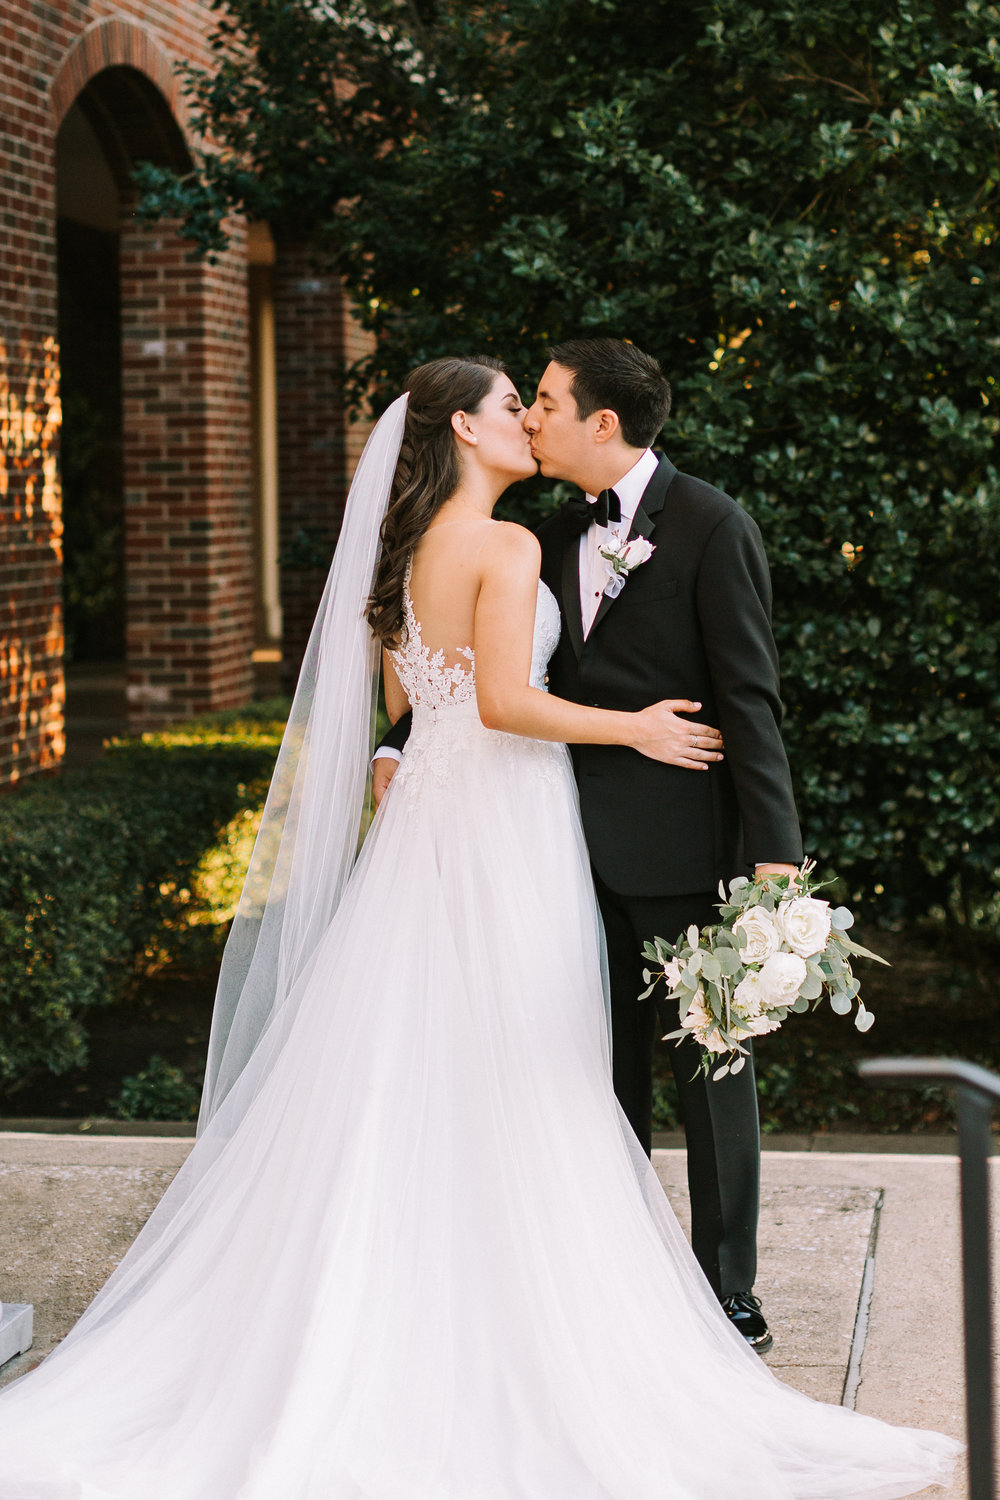 FULL SERVICE PLANNING - Perfect for the bride who wants someone who can completely materialize her wedding from start to finish, and everything in between. With full-service planning, you need not worry about a single detail. We plan, design, and coordinate an event that fits your every desire.